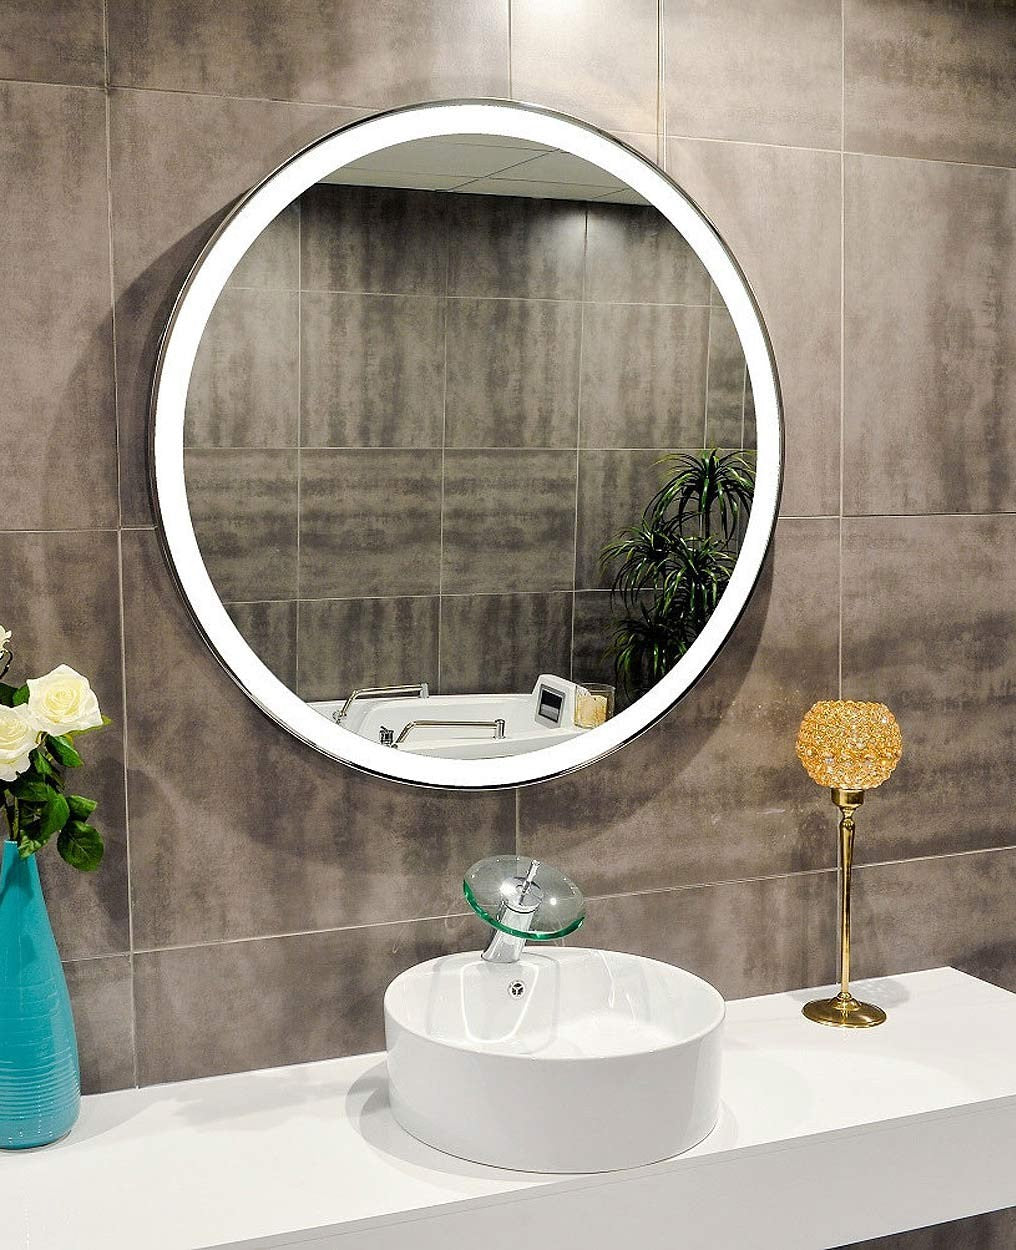 5 Reasons Why You Should Switch to LED Mirrors for your Bathroom